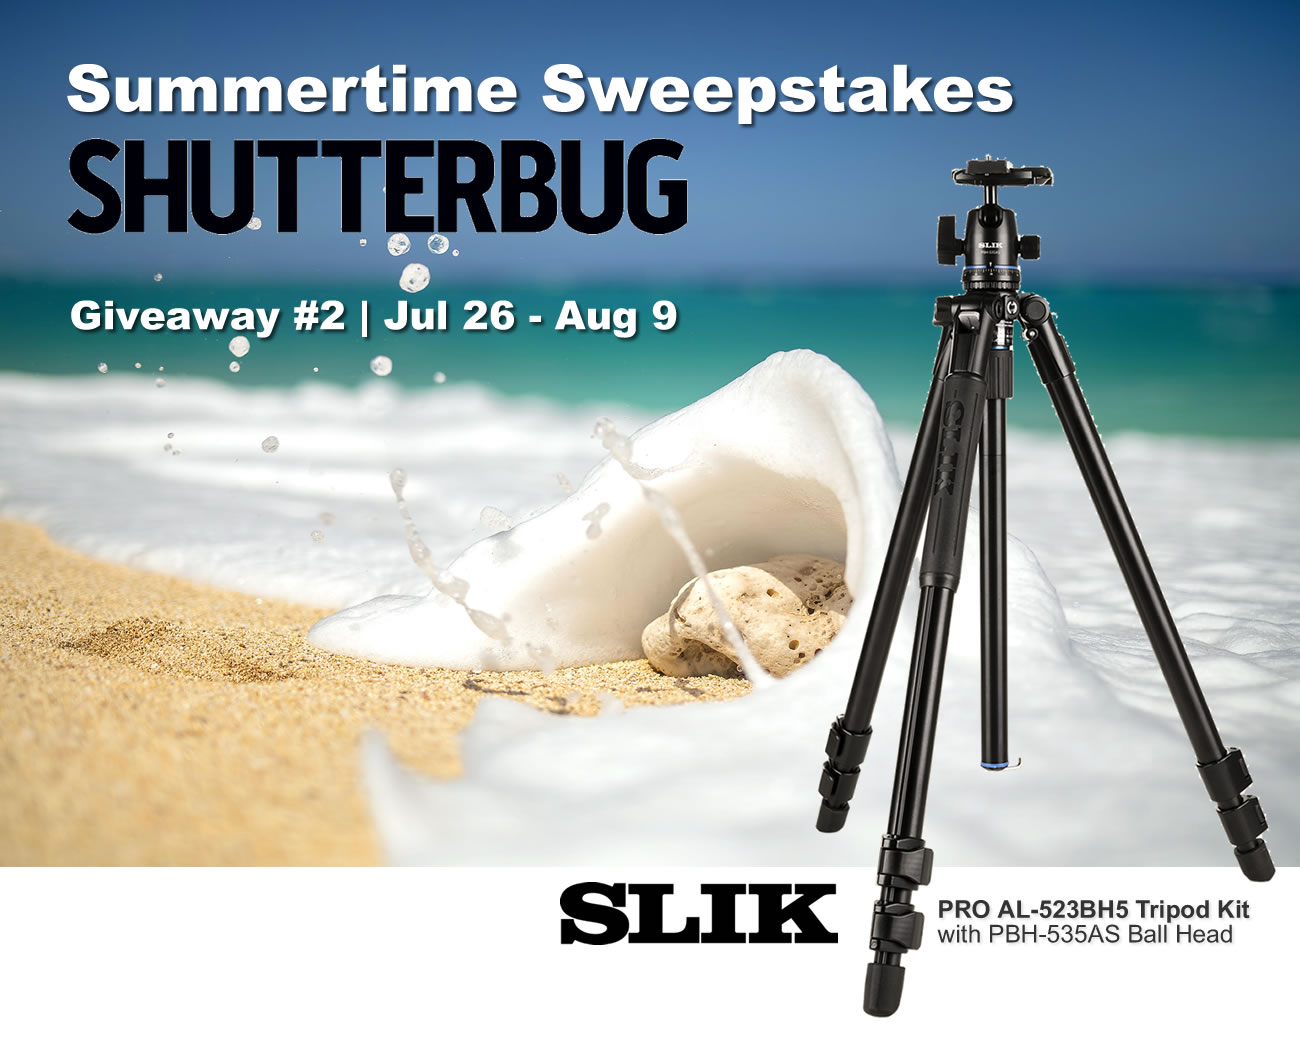 3x SLIK PRO AL-523BH5 Tripod Kits with PBH-535AS Ball Head ($189.95 retail value each) and 4x $50 Amazon Gift Cards Giveaway Image